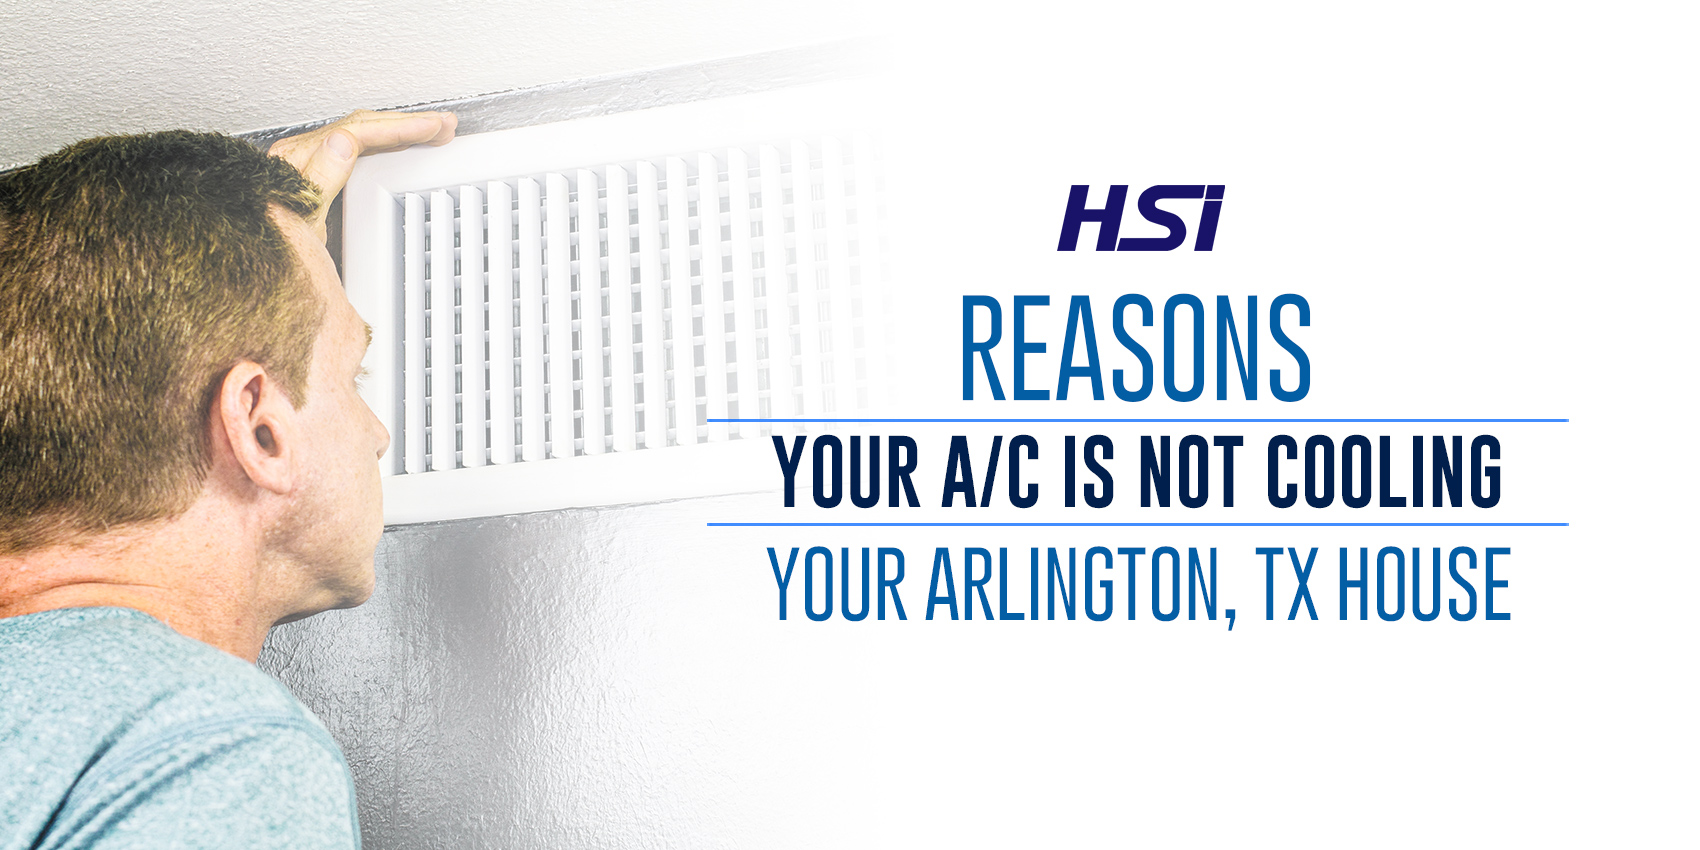 Reasons Your A/C Is Not Cooling Your Arlington, TX House